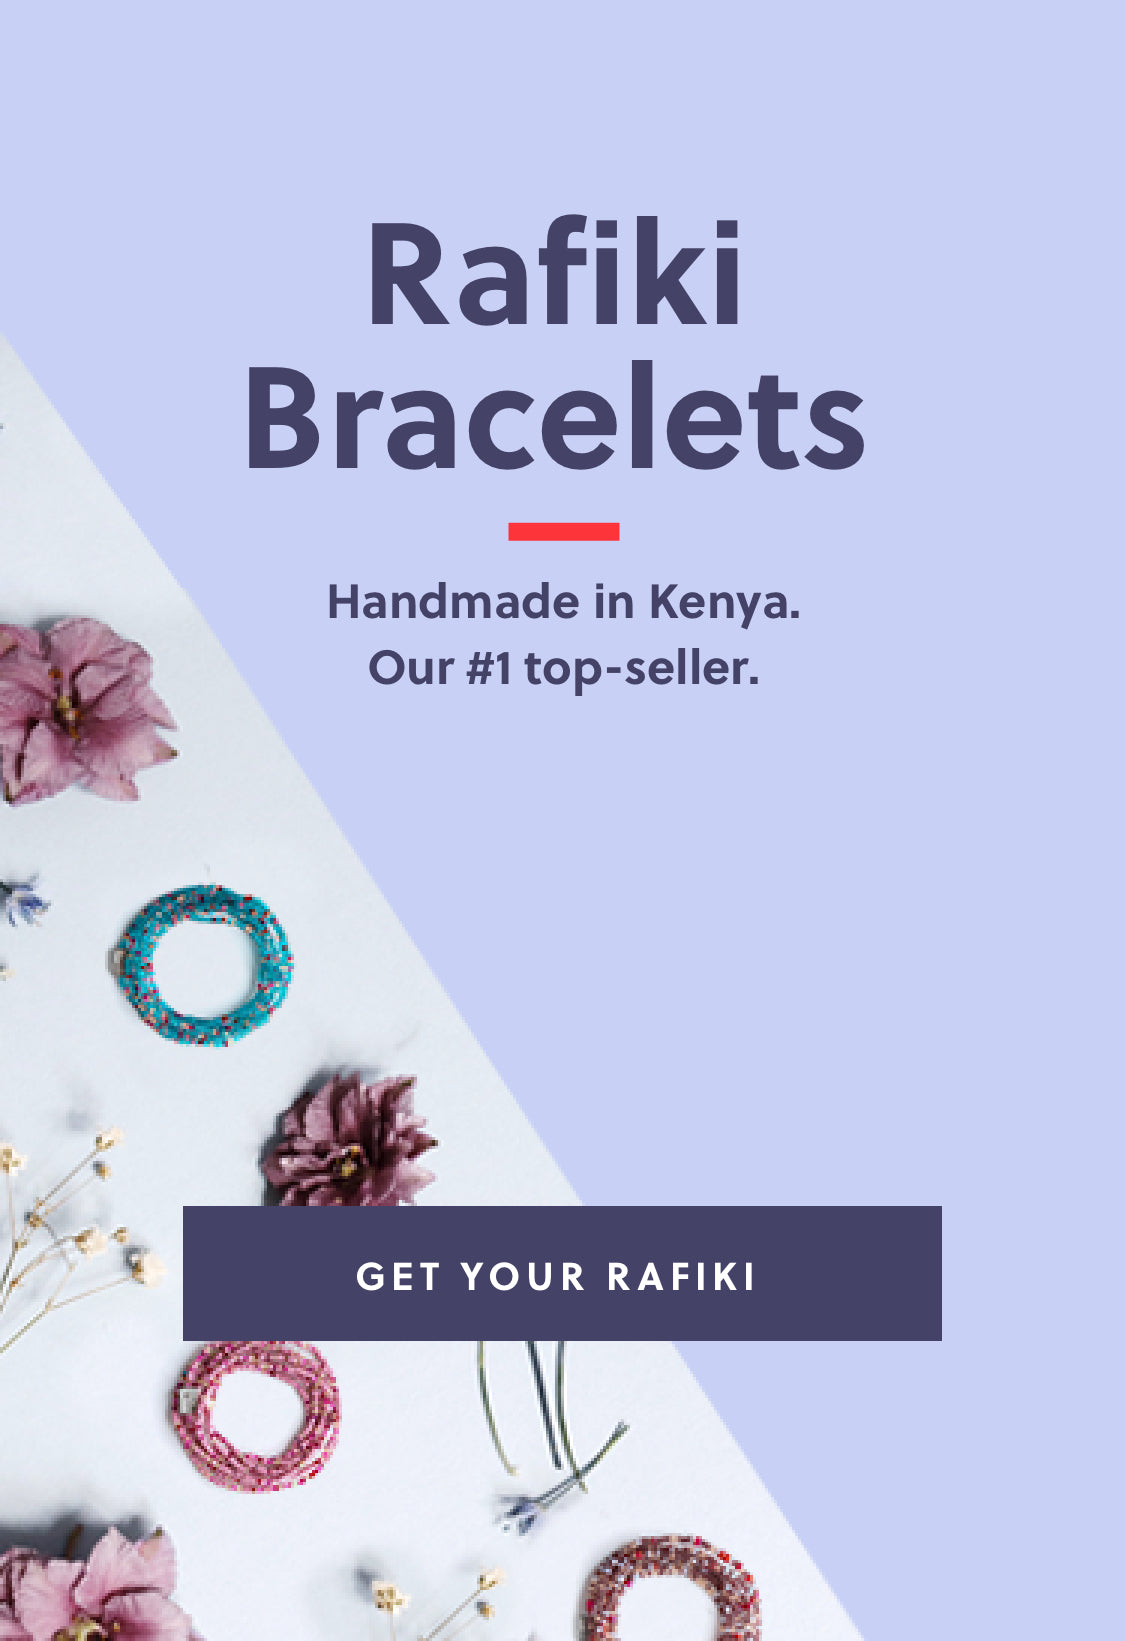 Shop Rafiki Bracelets | Handmade in Kenya Our #1 top-seller.